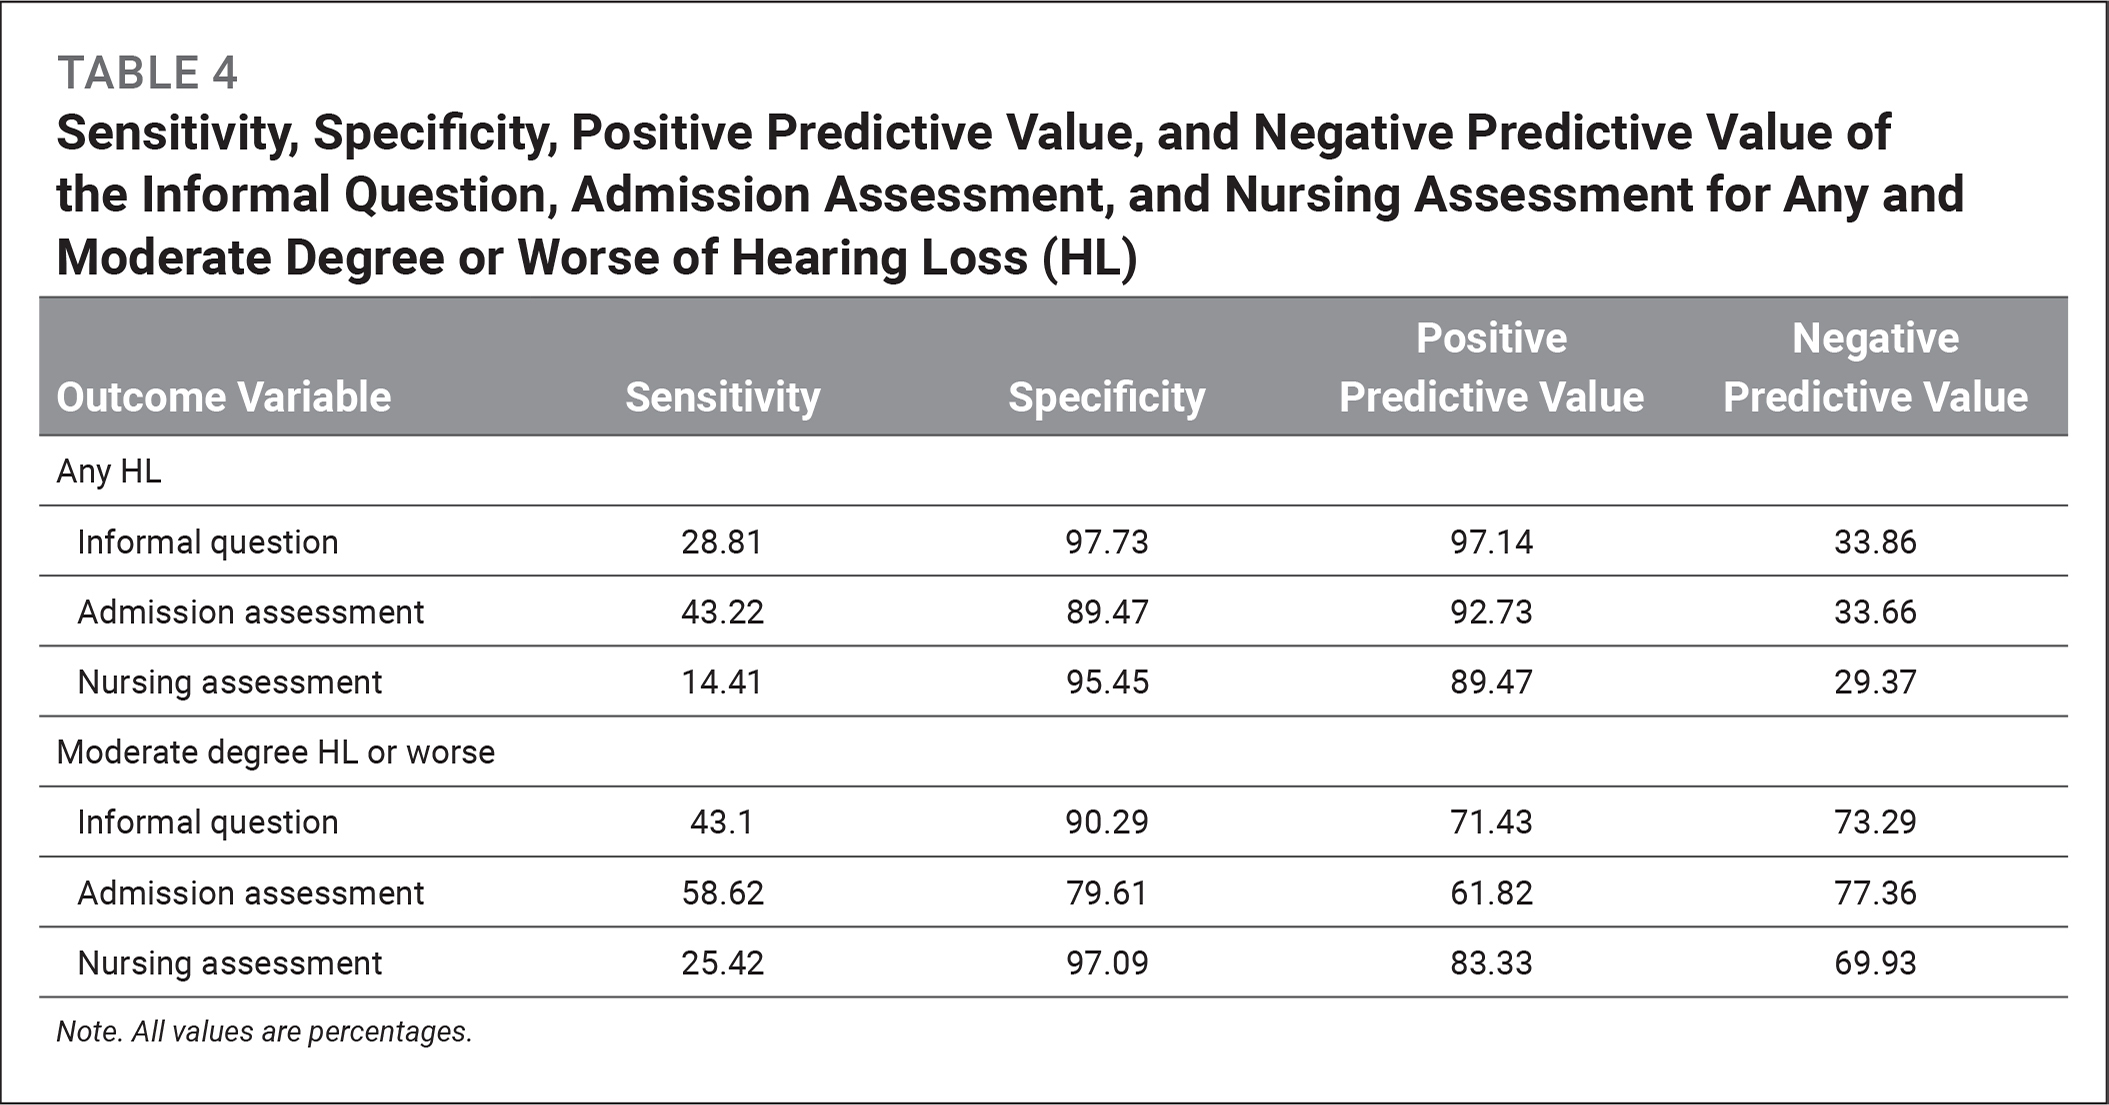 Sensitivity, Specificity, Positive Predictive Value, and Negative Predictive Value of the Informal Question, Admission Assessment, and Nursing Assessment for Any and Moderate Degree or Worse of Hearing Loss (HL)